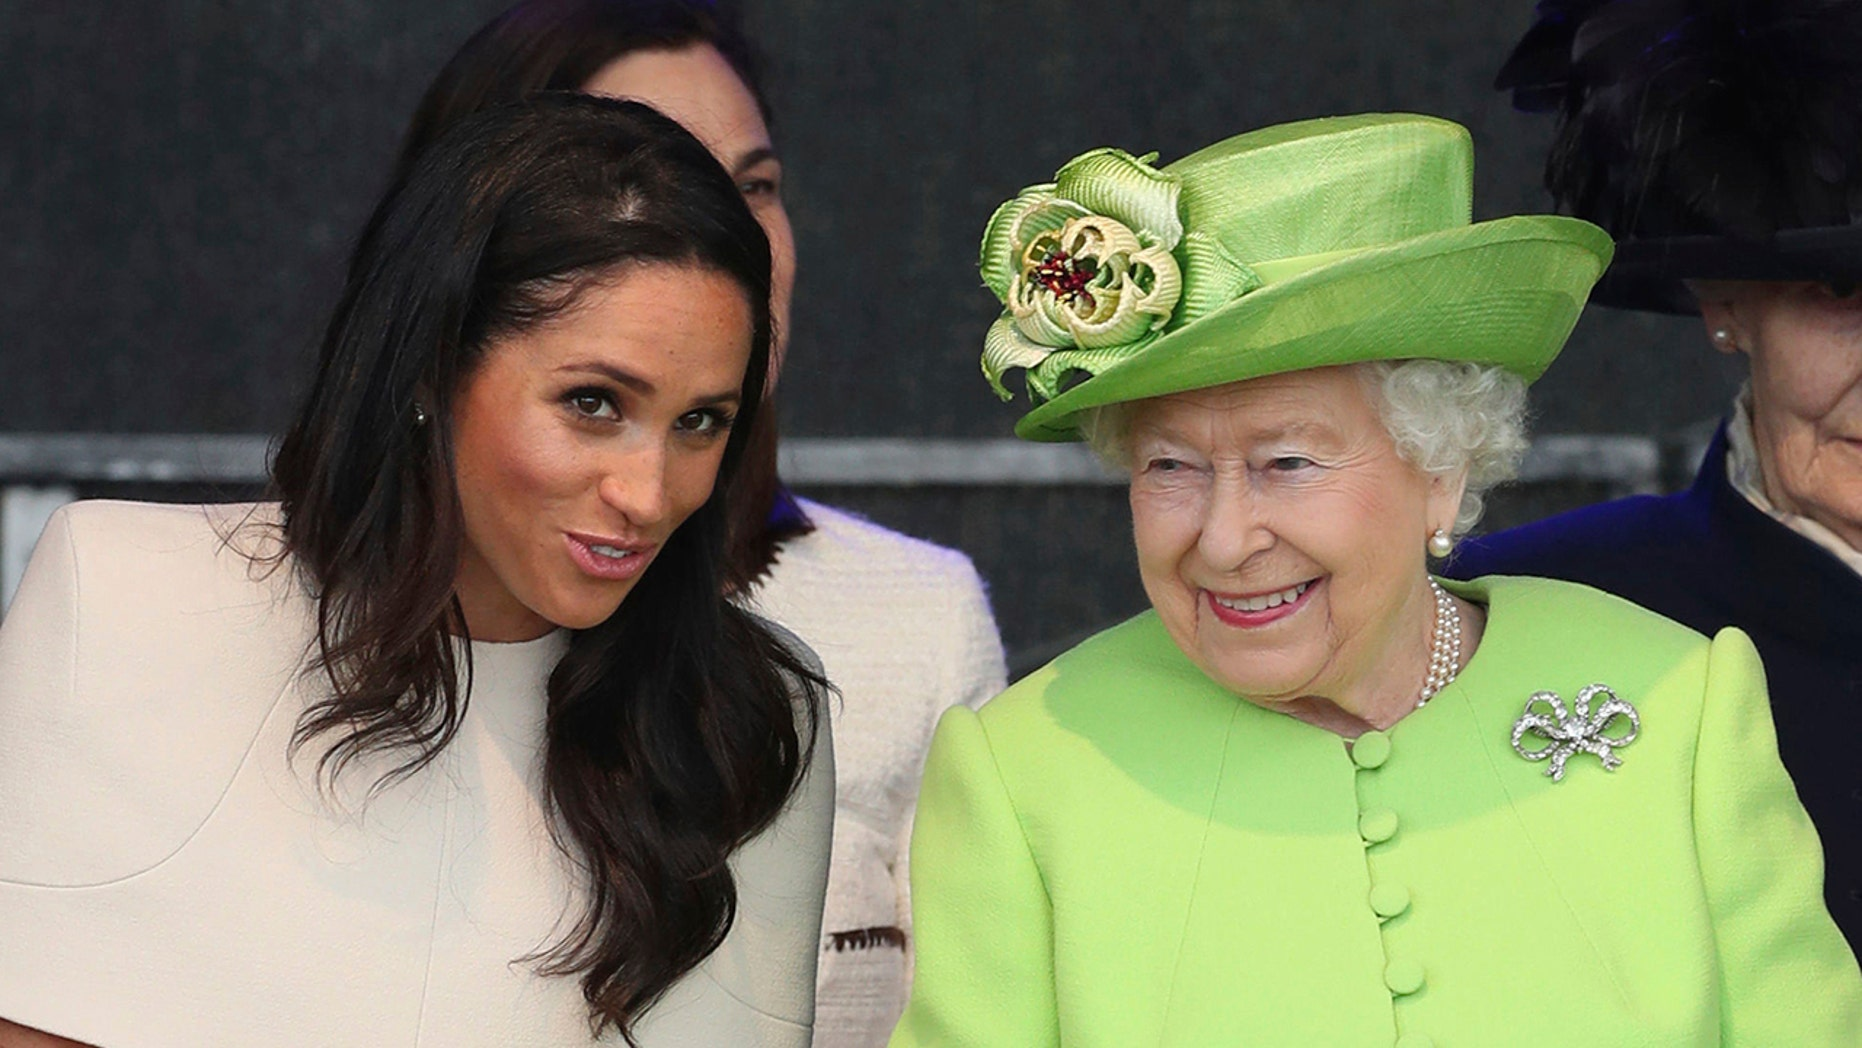 Queen Elizabeth II and Meghan, Duchess of Sussex, on the left, attend the unveiling of the new Mersey Gateway Bridge, in Widnes, North West England, on Thursday. June 14, 2018.